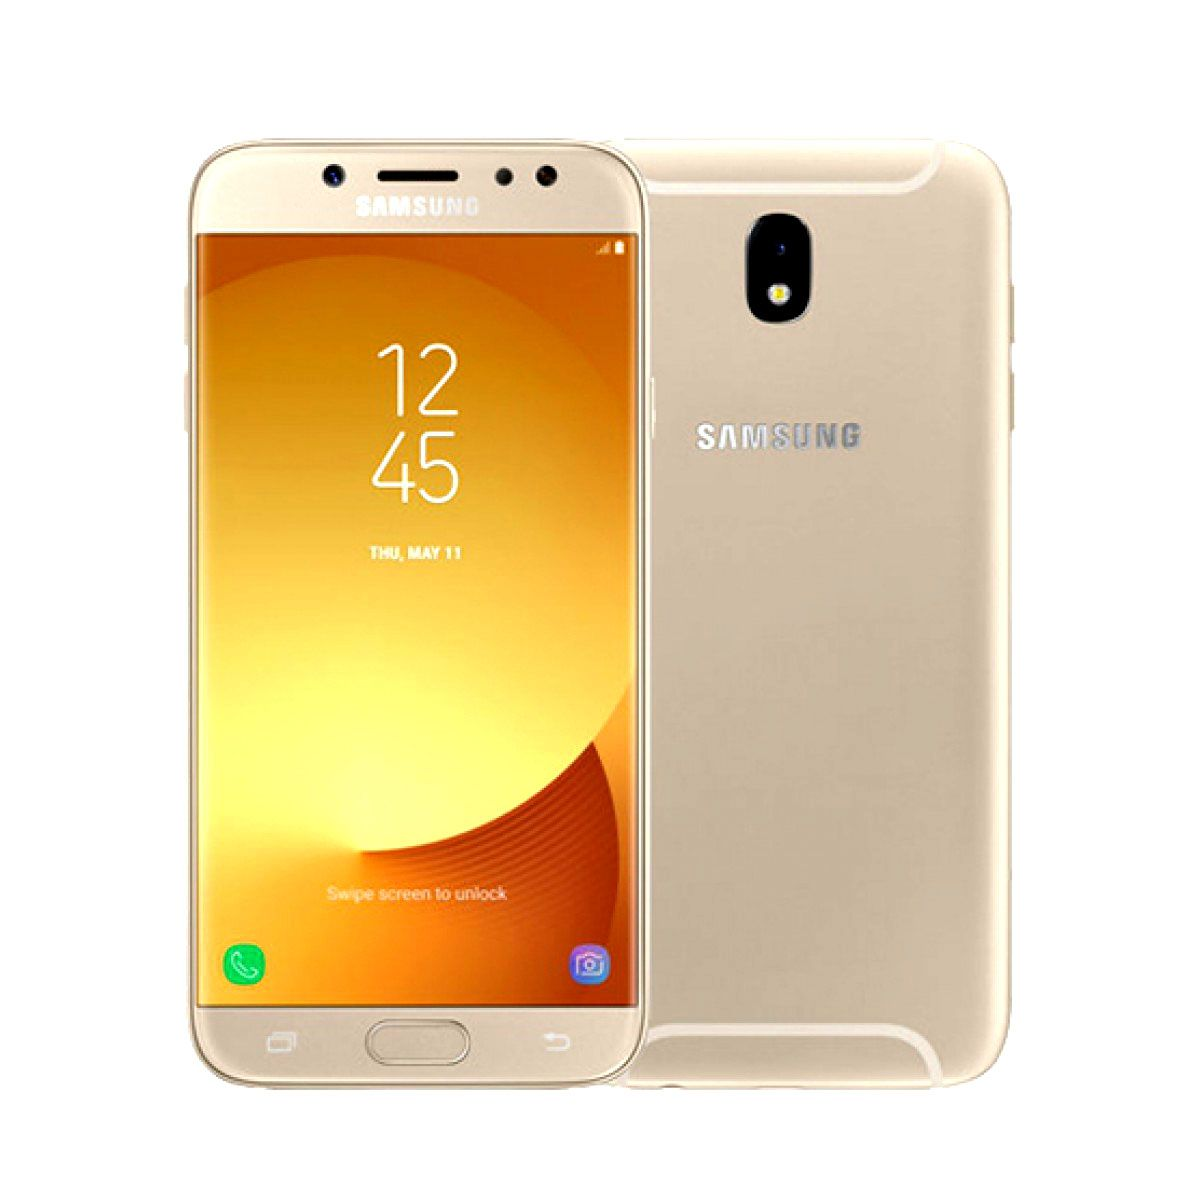 J7 Pas Cher Samsung J7 Pro Gold 16gb Buy Sell Mobiles In 2019 Samsung